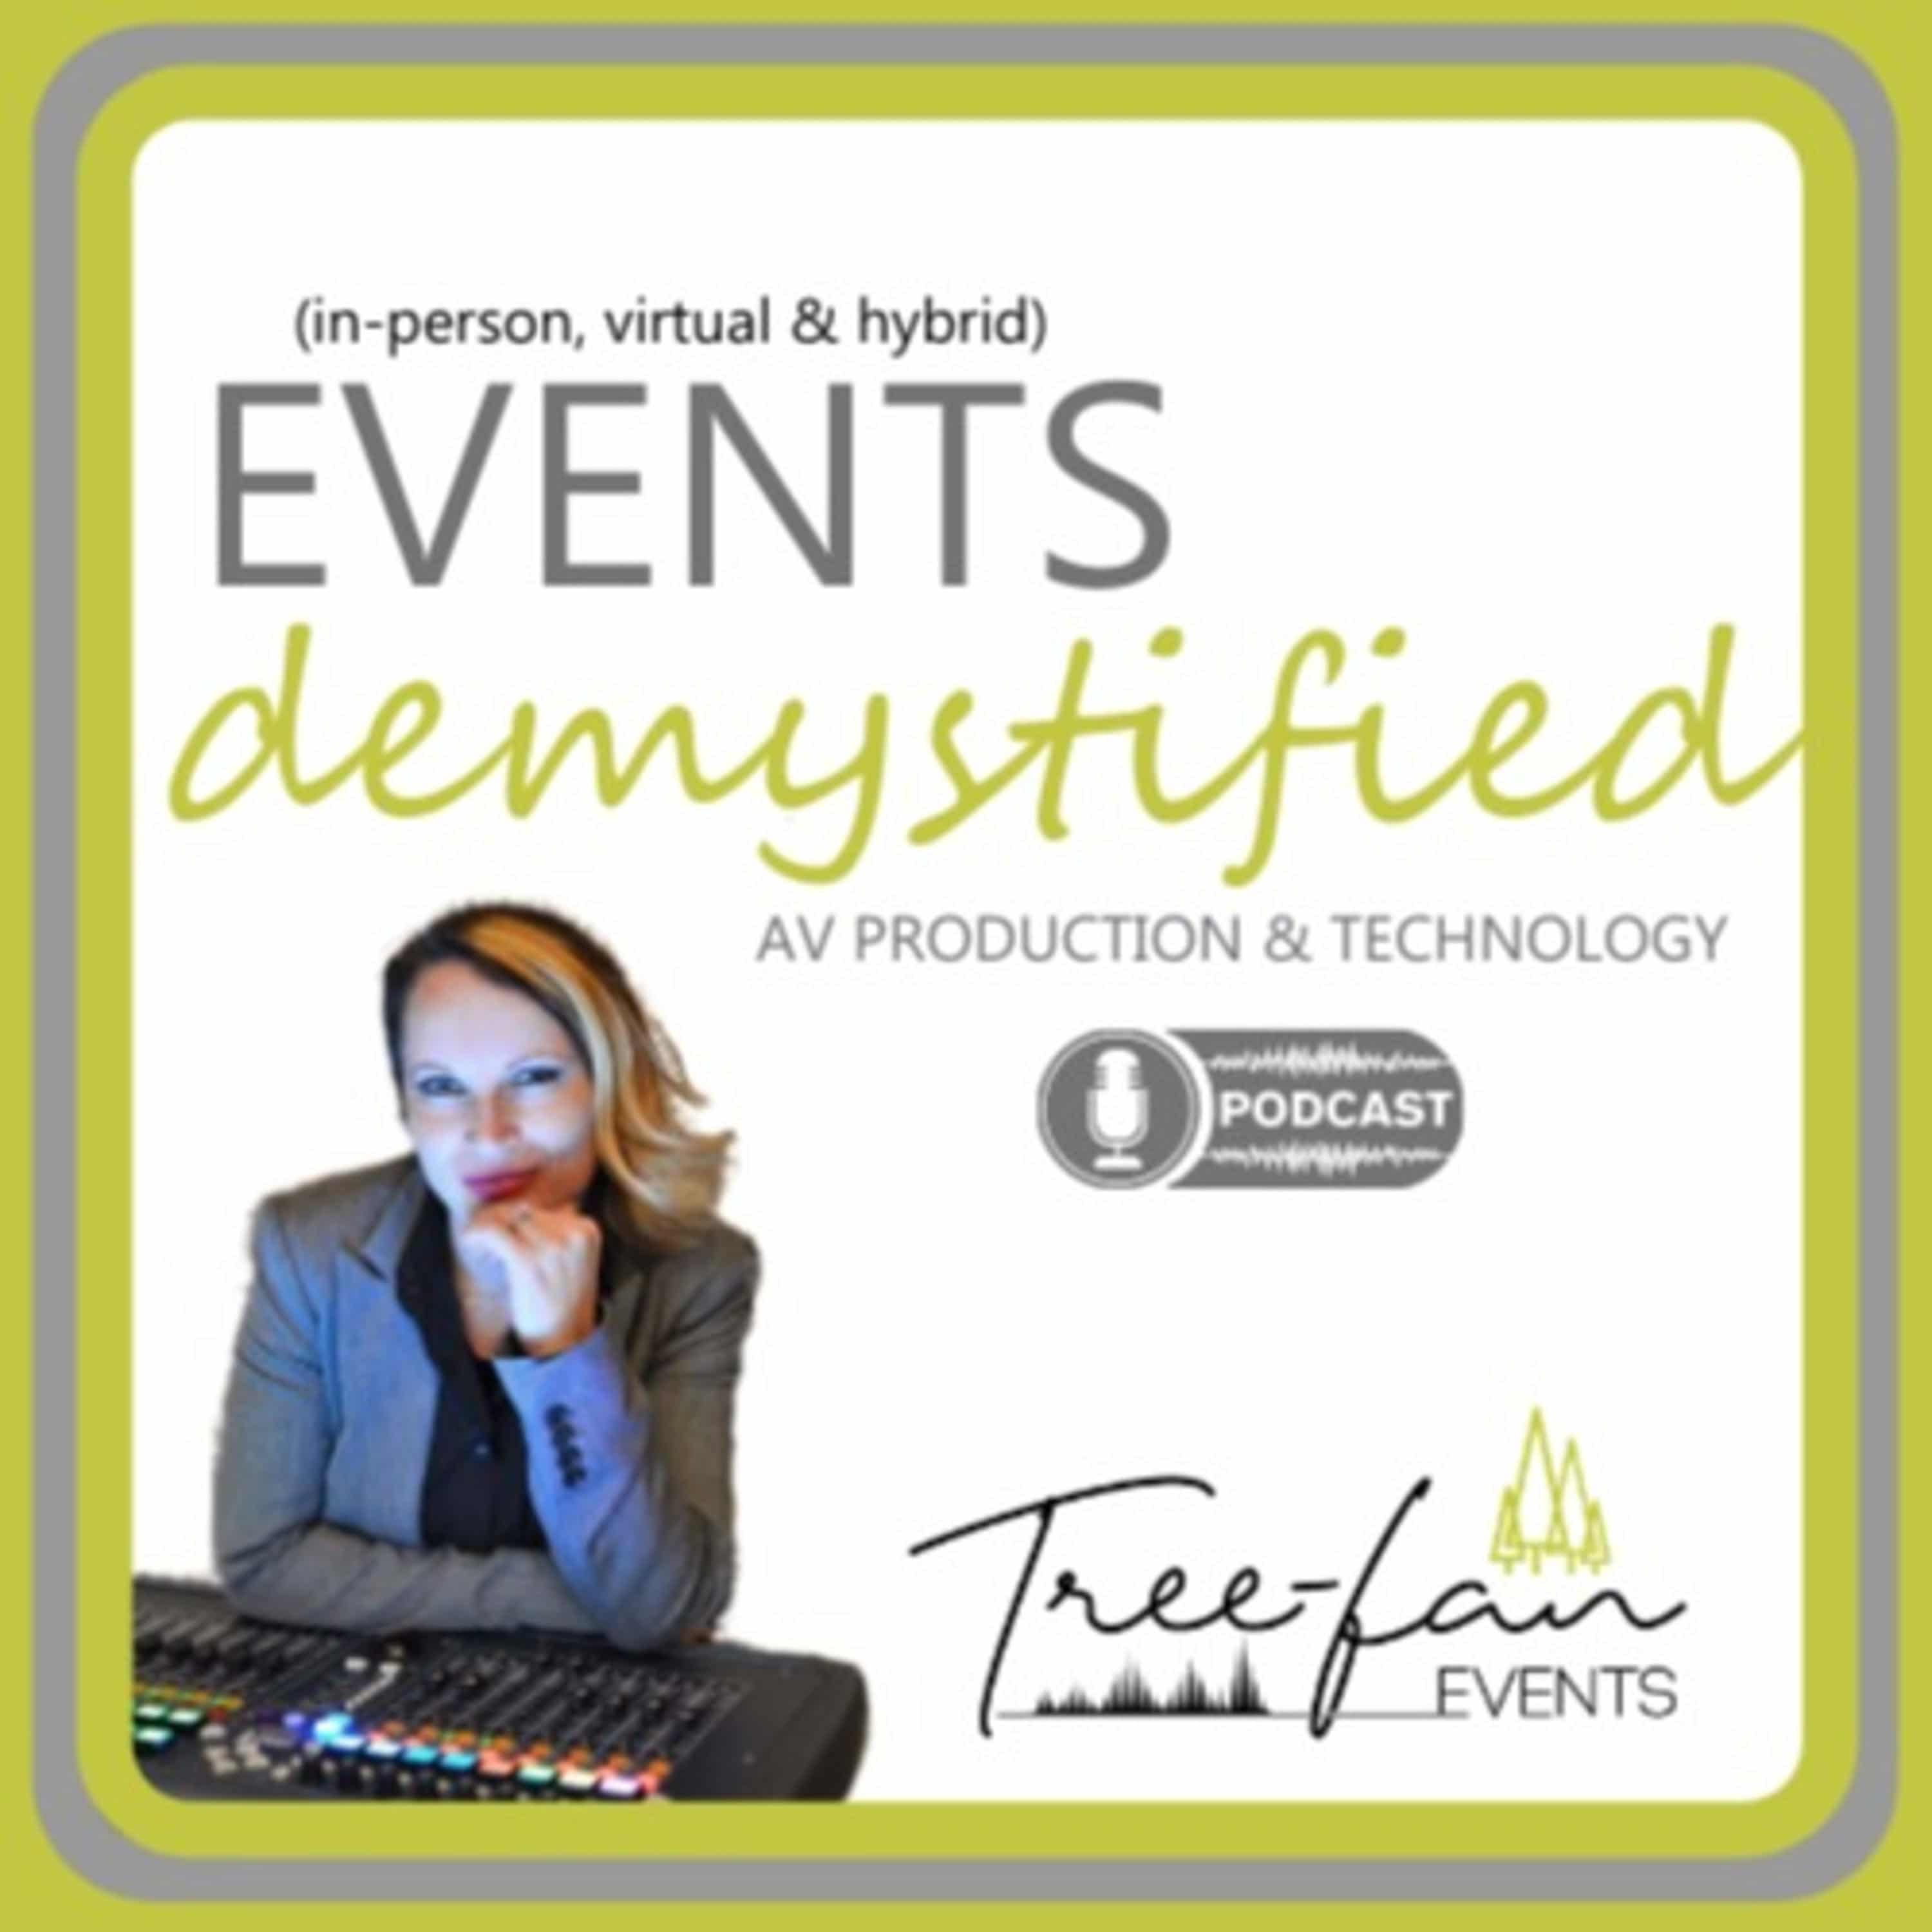 Tree-Fan Events Podcast